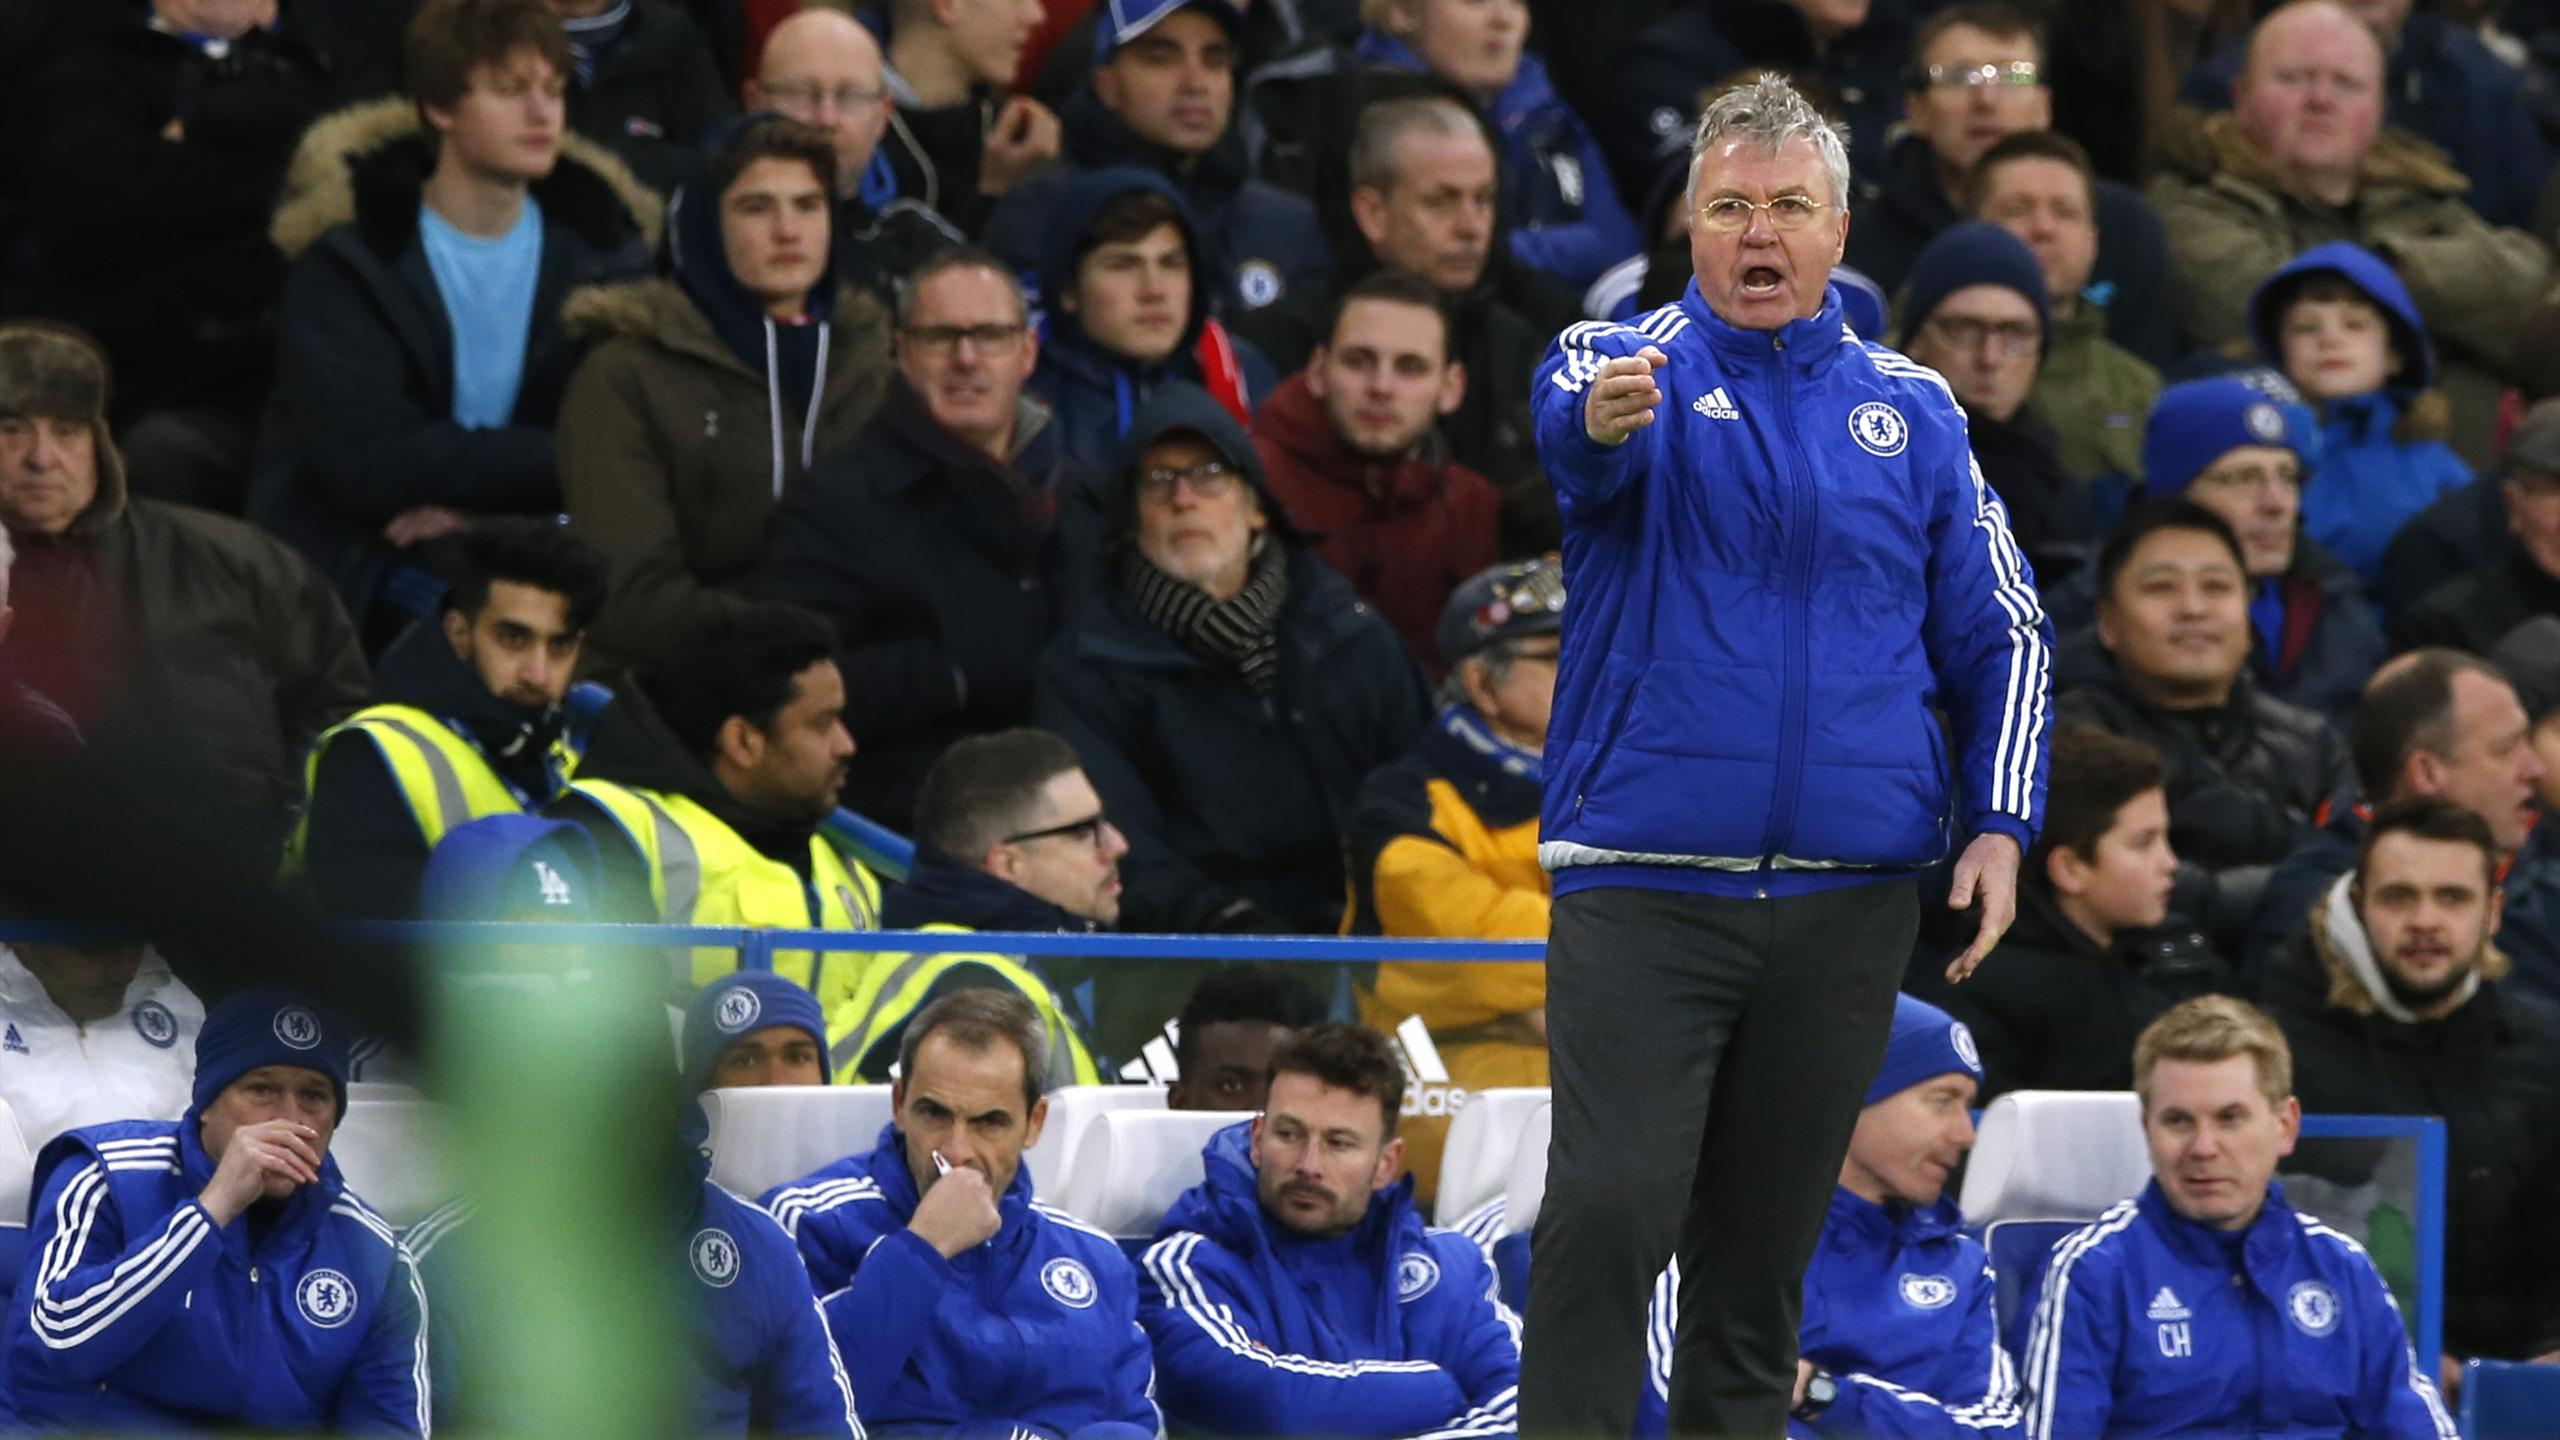 Chelsea manager Guus Hiddink remonstrates